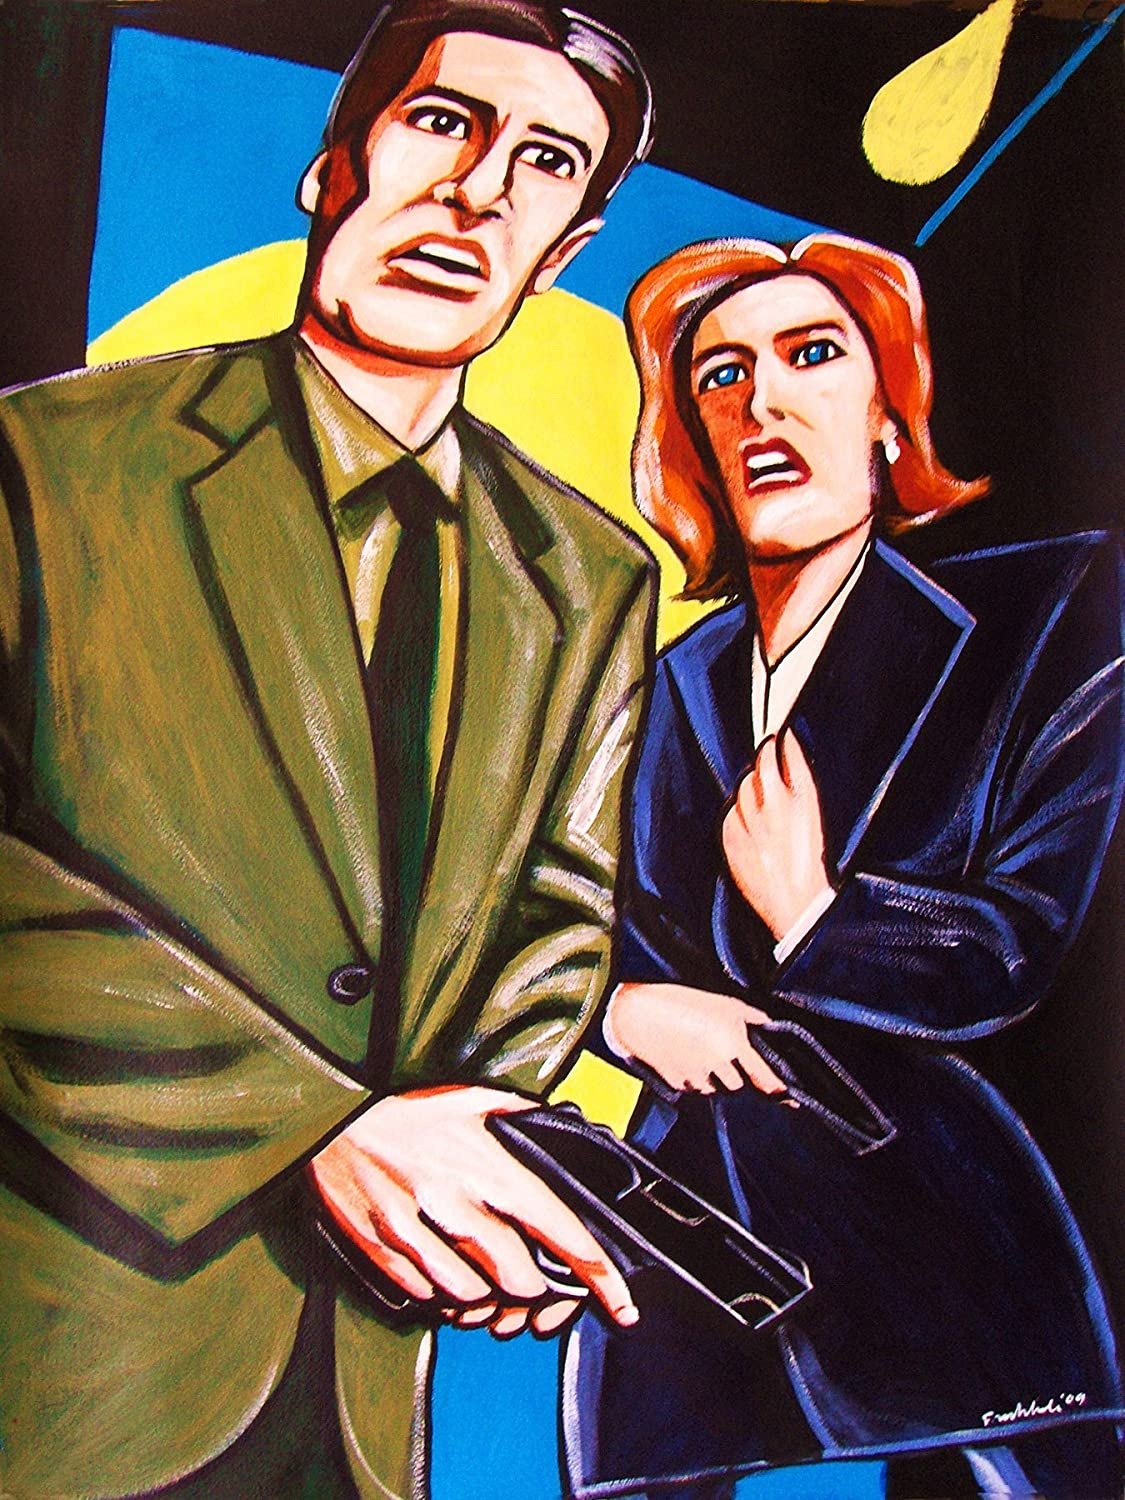 BLUE THE X FILES 2 FRAMED CANVAS WALL ART CLASSIC SHOW PICTURE PAPER PRINT